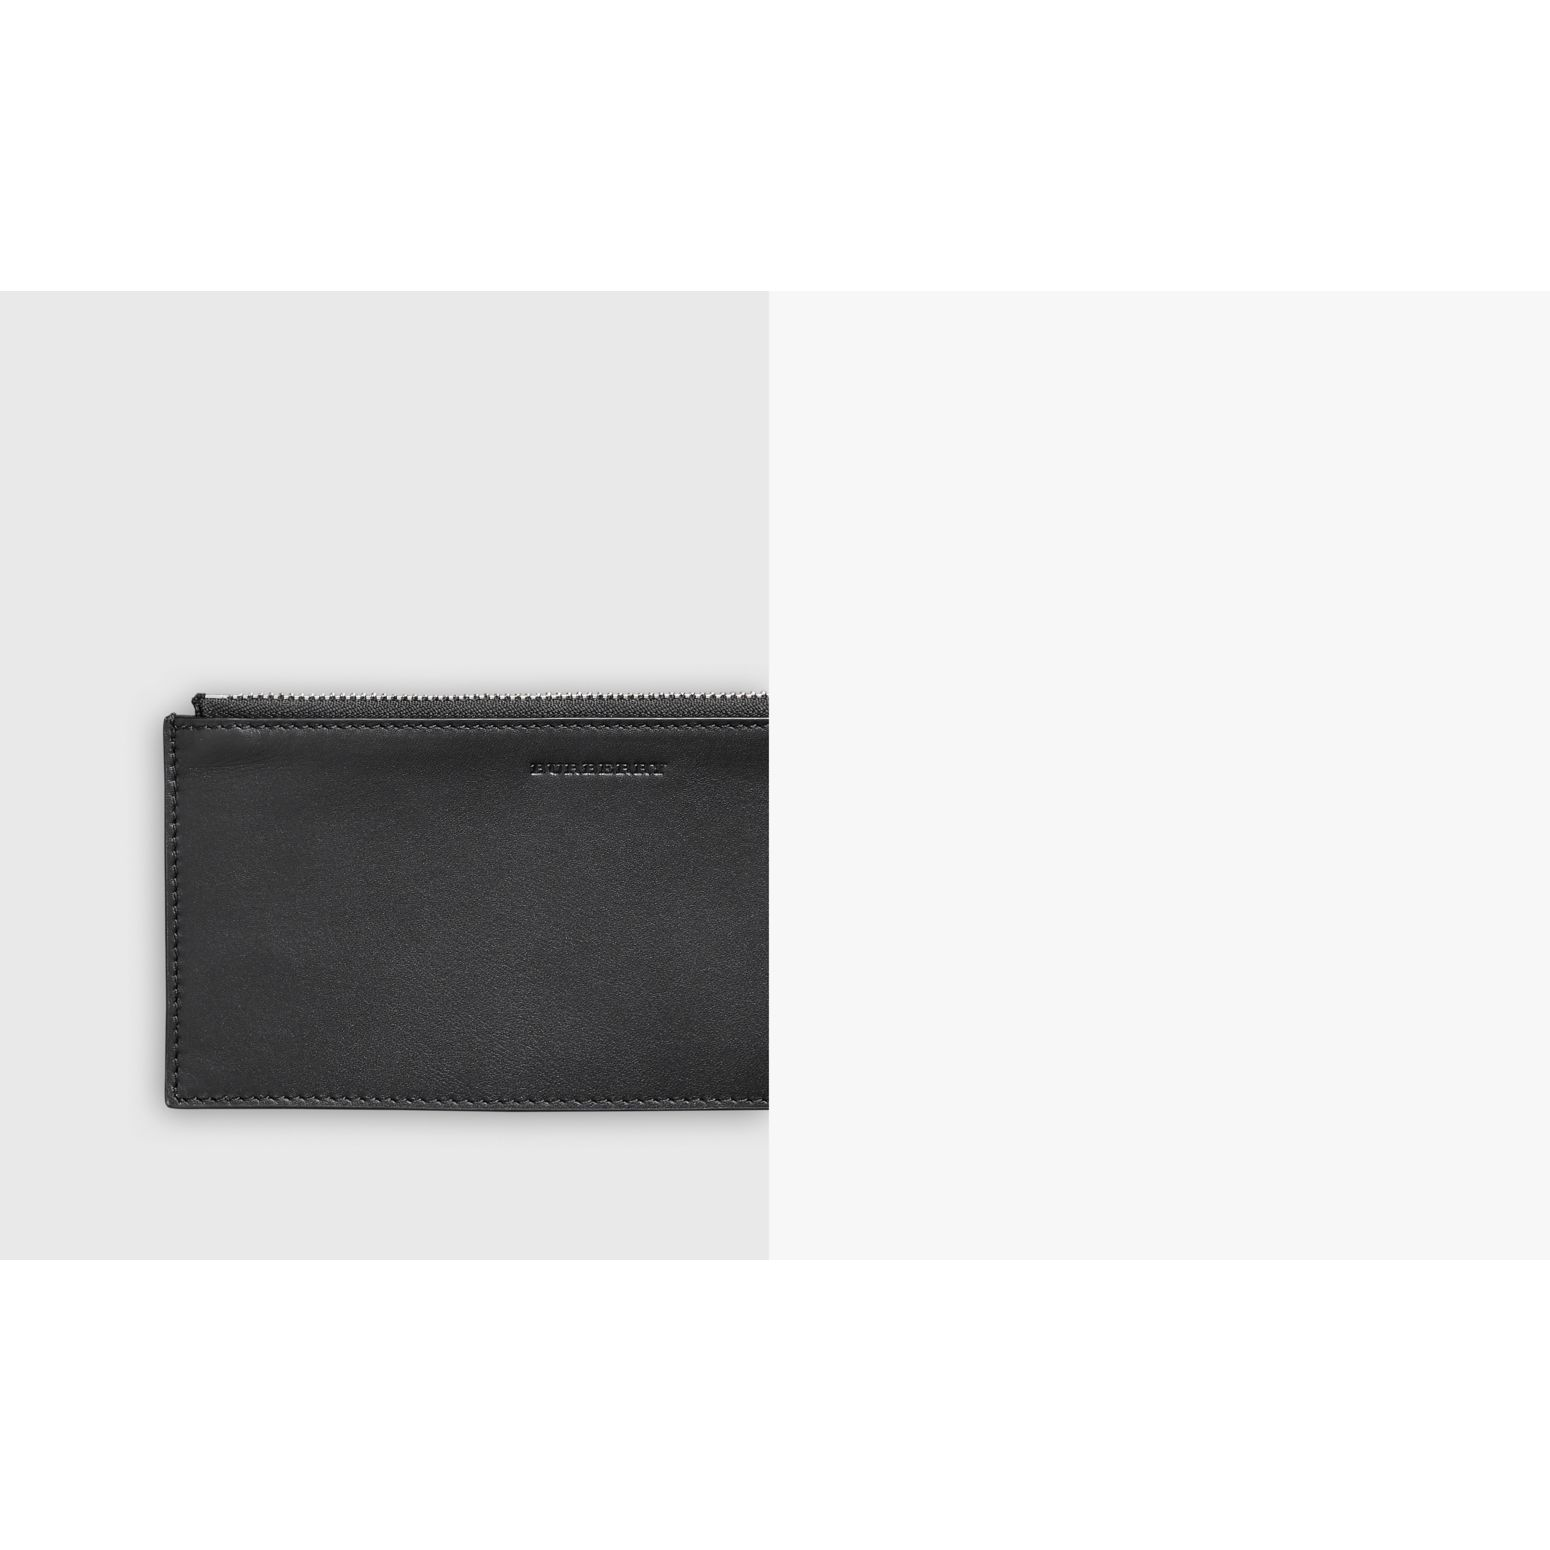 London Leather Travel Wallet in Black - Men | Burberry Hong Kong - gallery image 1